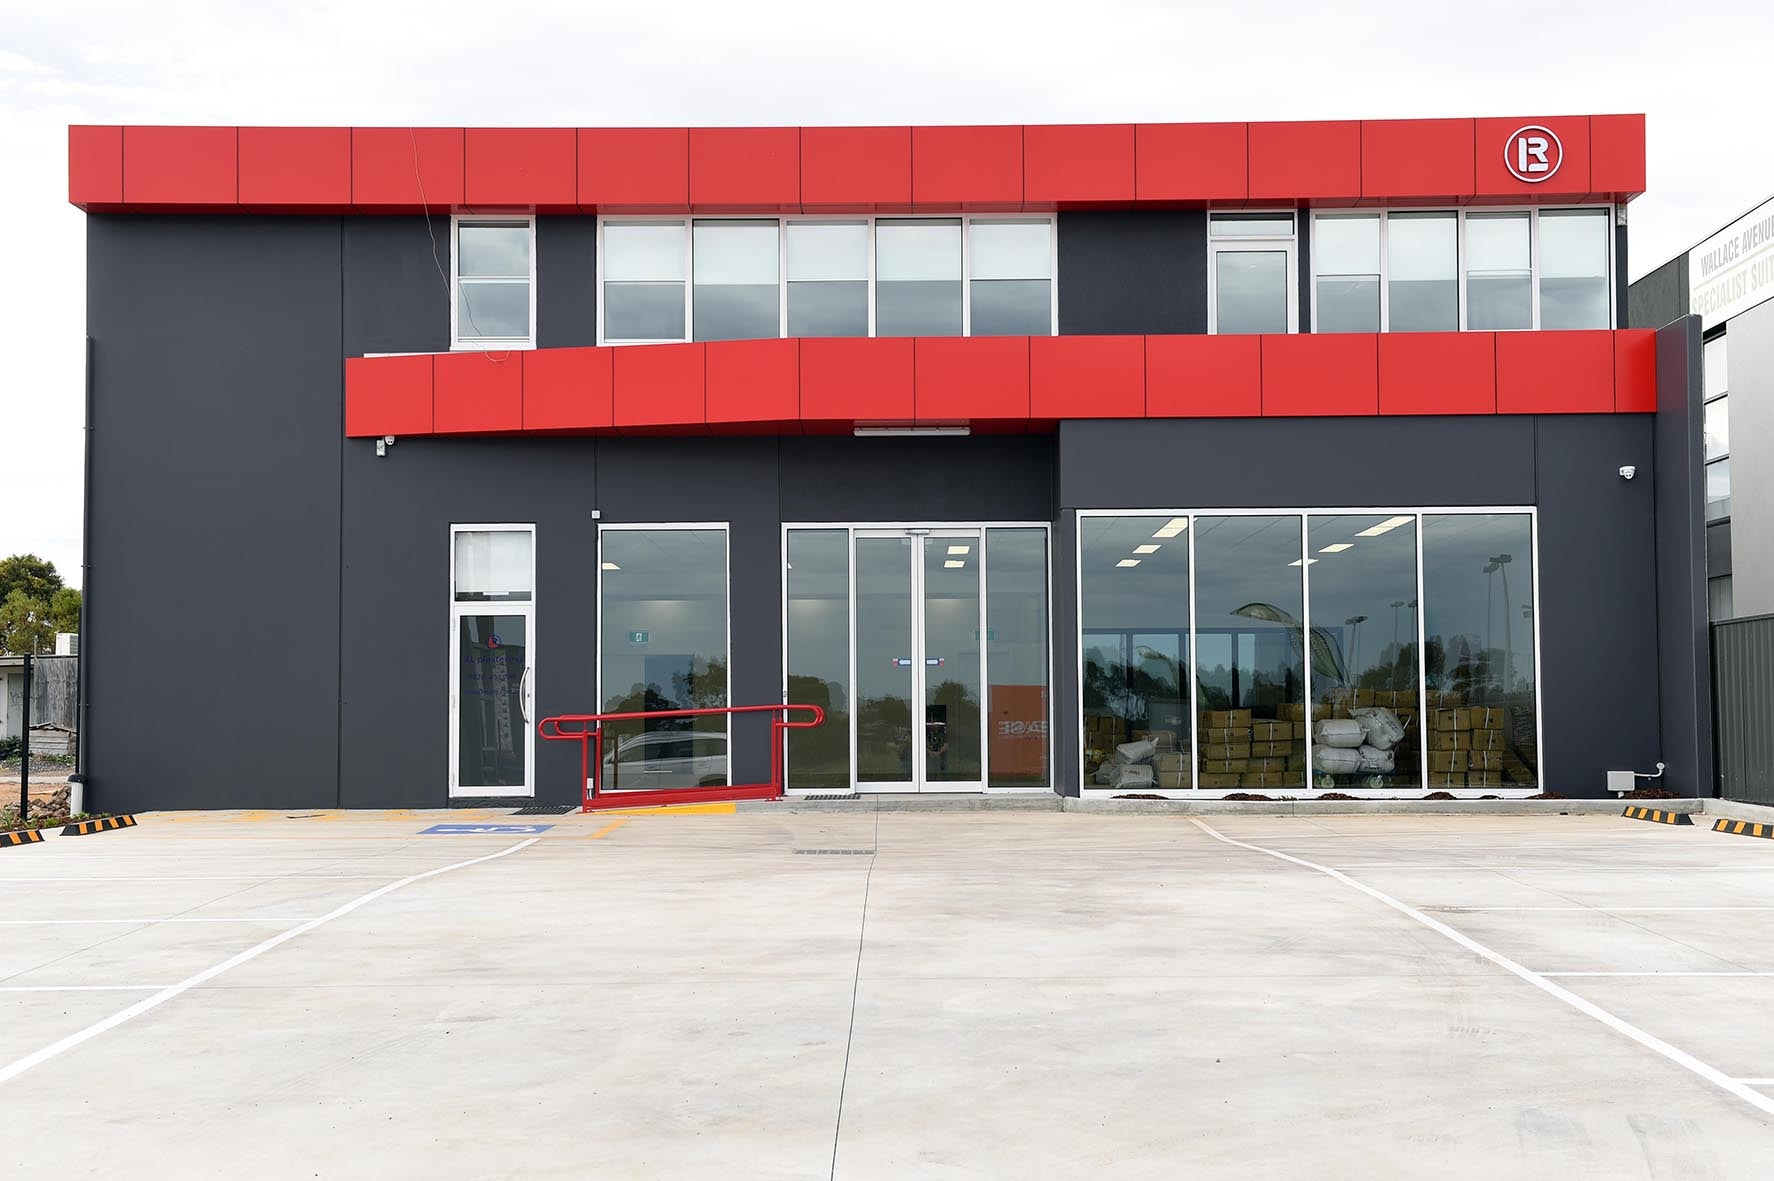 red and grey precast concrete walls and large glass windows at front of building